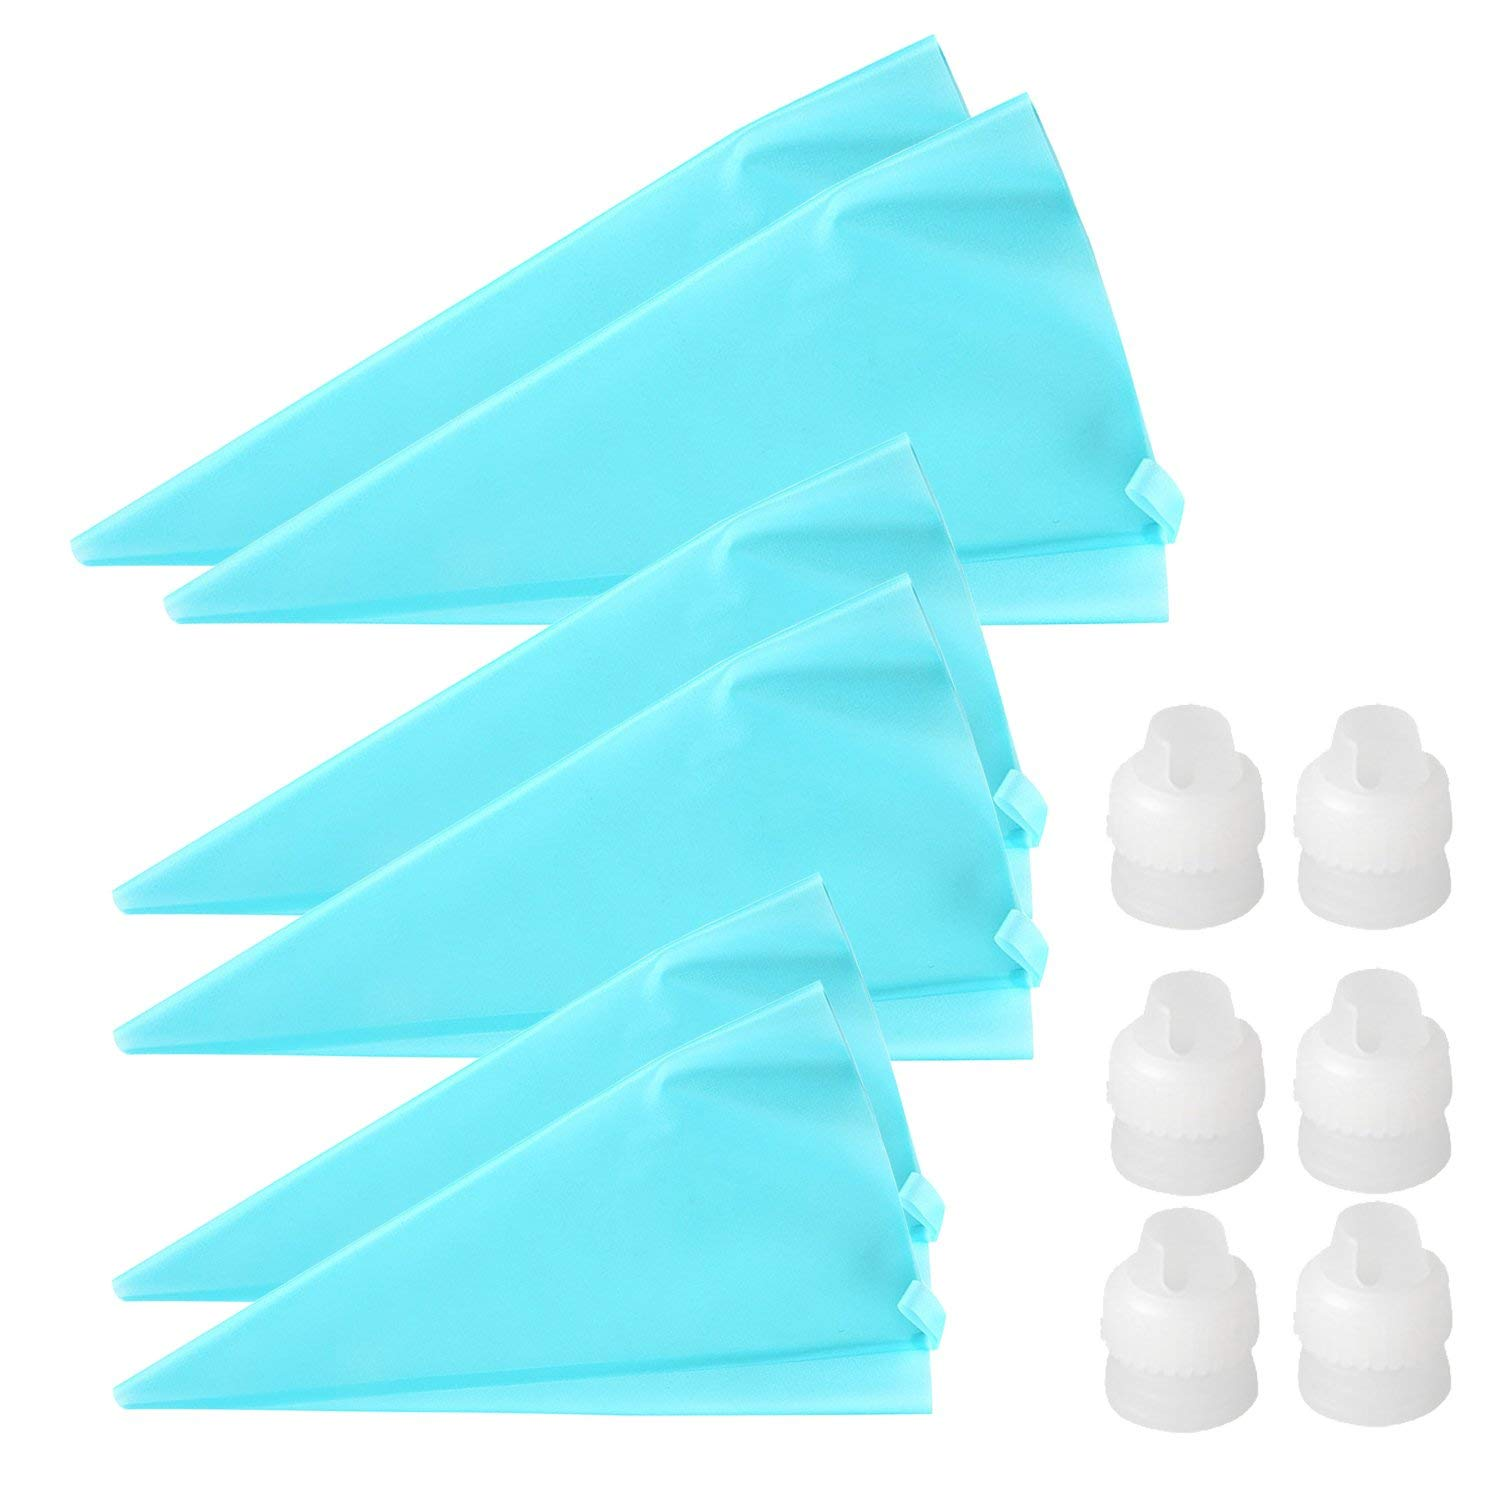 STARUBY 6Pcs Pastry Bag Set Premium Silicone 3 Sizes Reusable Icing Piping Bags (10''+12''+14'')2 Baking Pastry Cake/Cupcake Decorating Presses Bags Small Medium and Large - Bonus 6 Icing Couplers